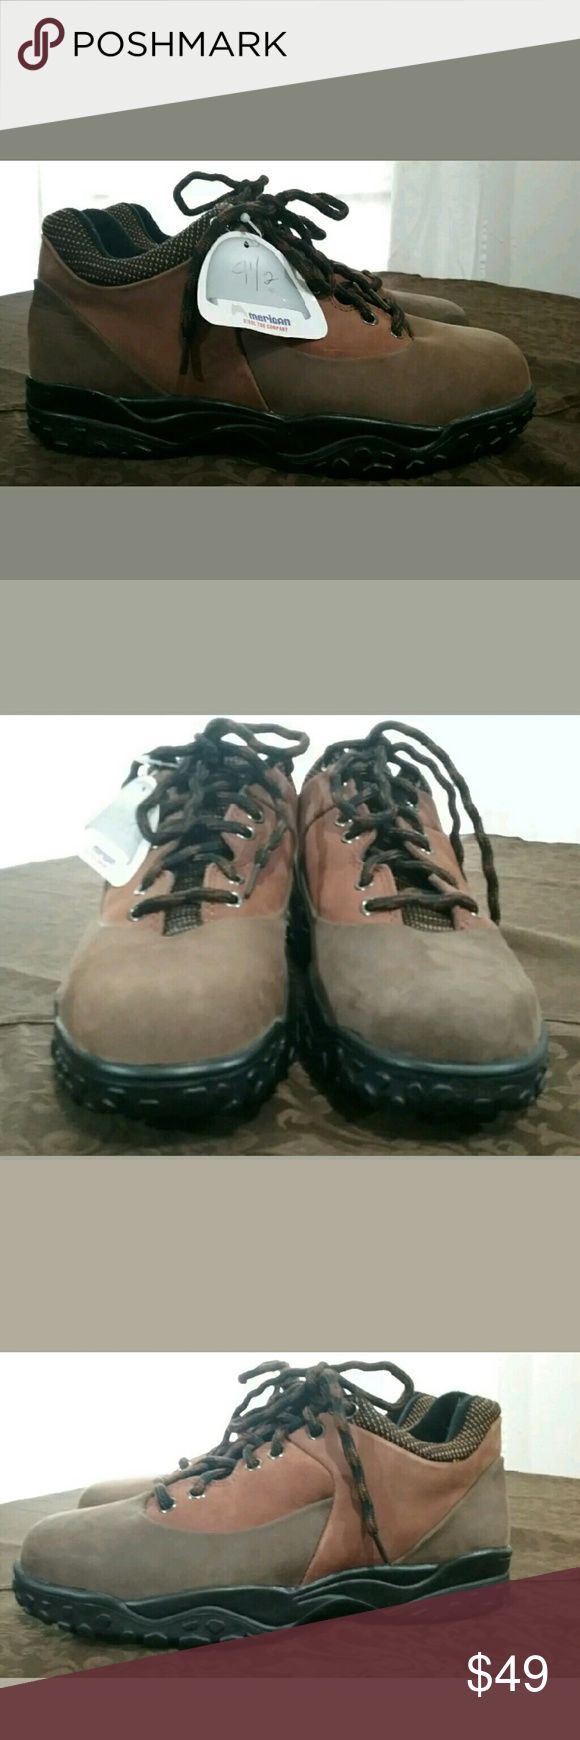 Red Wings Worx Steel Toe Boots Shoes 9 1/2 For sale is a Pair of Men's Worx by Red Wings Shoes Size 9.5 M - New Without Original Box?   Please, view all pictures, and ask questions if you have any.?? Worx By Red Wings  Shoes Boots